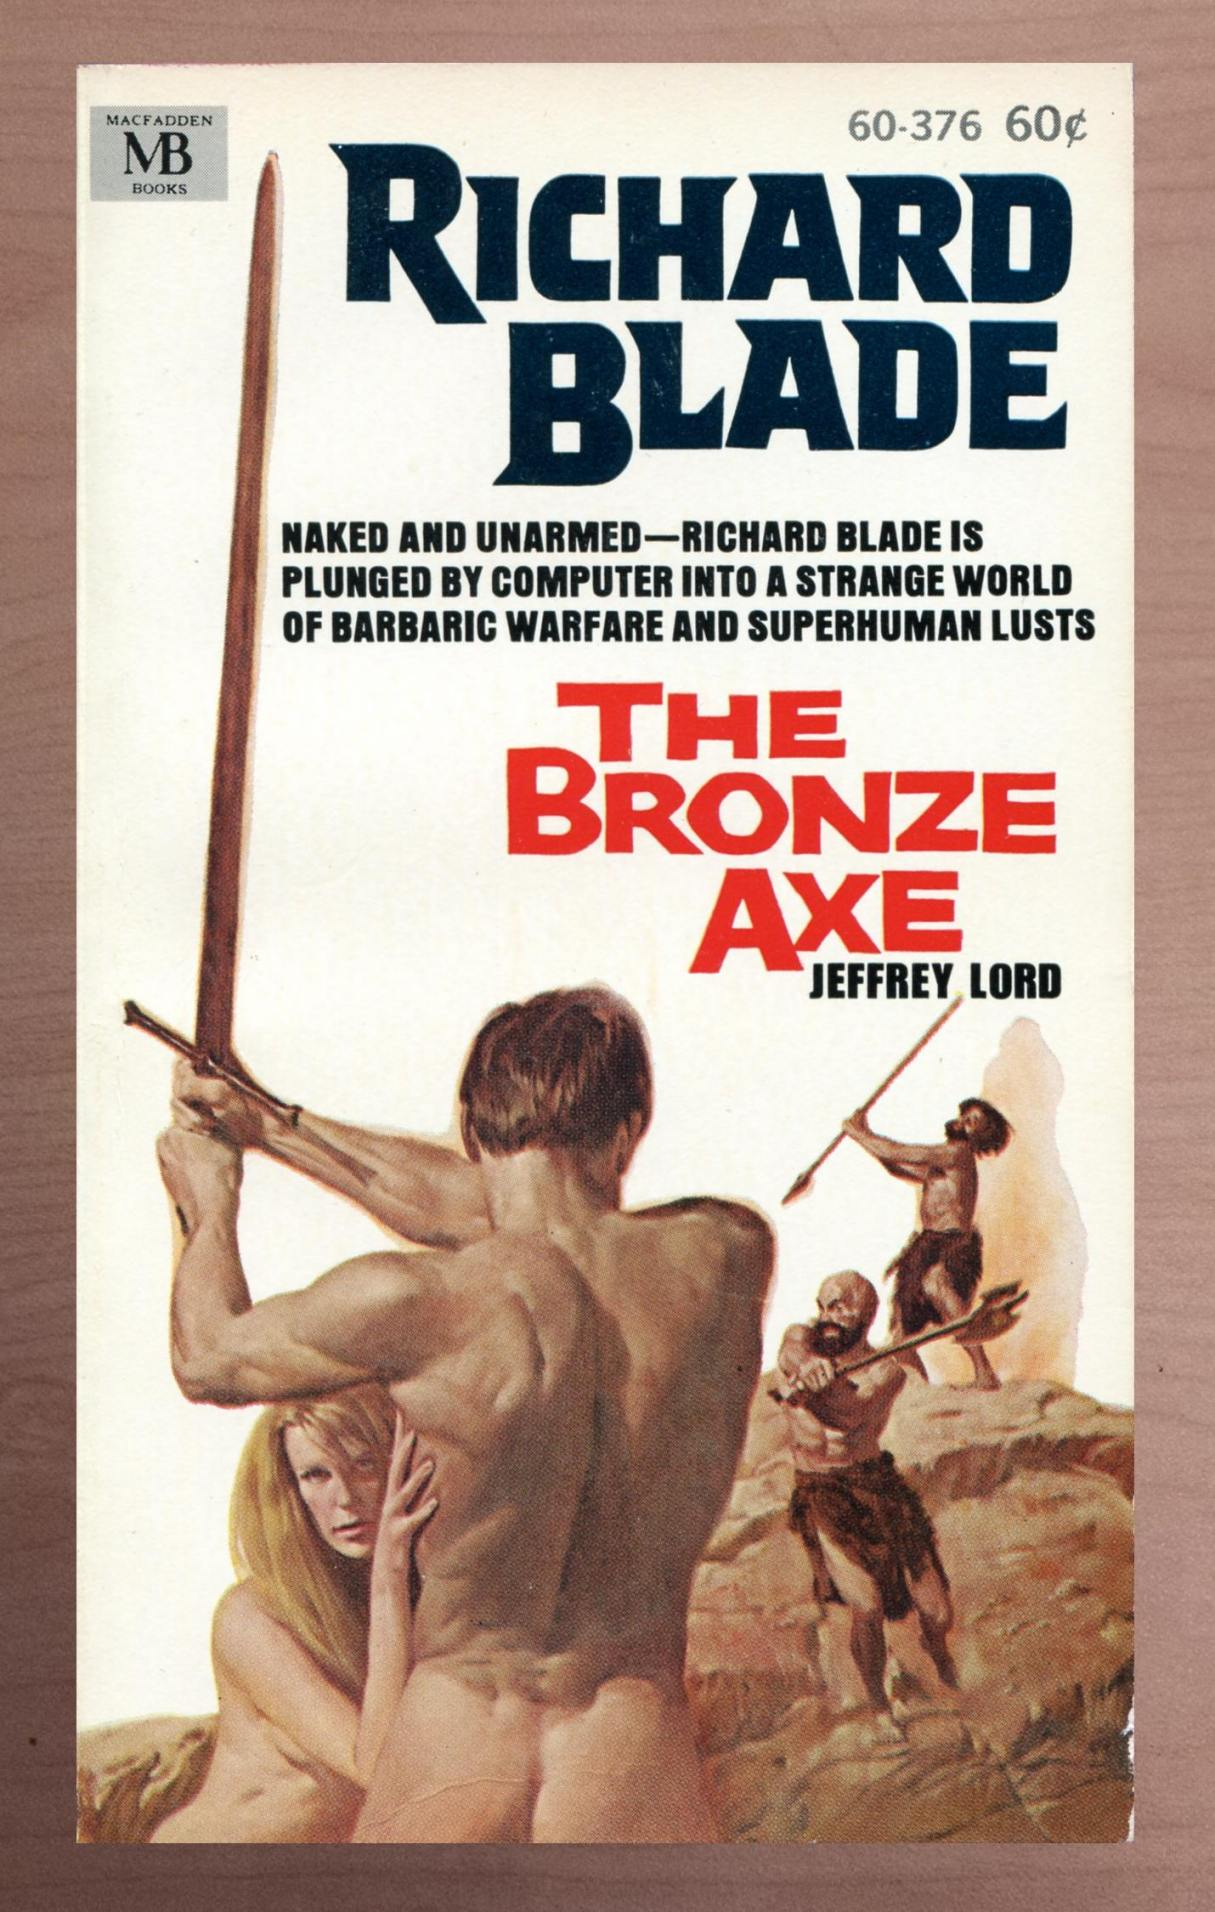 Bronze Axe: The new Axe body spray and bronze tanner. All-in-one!